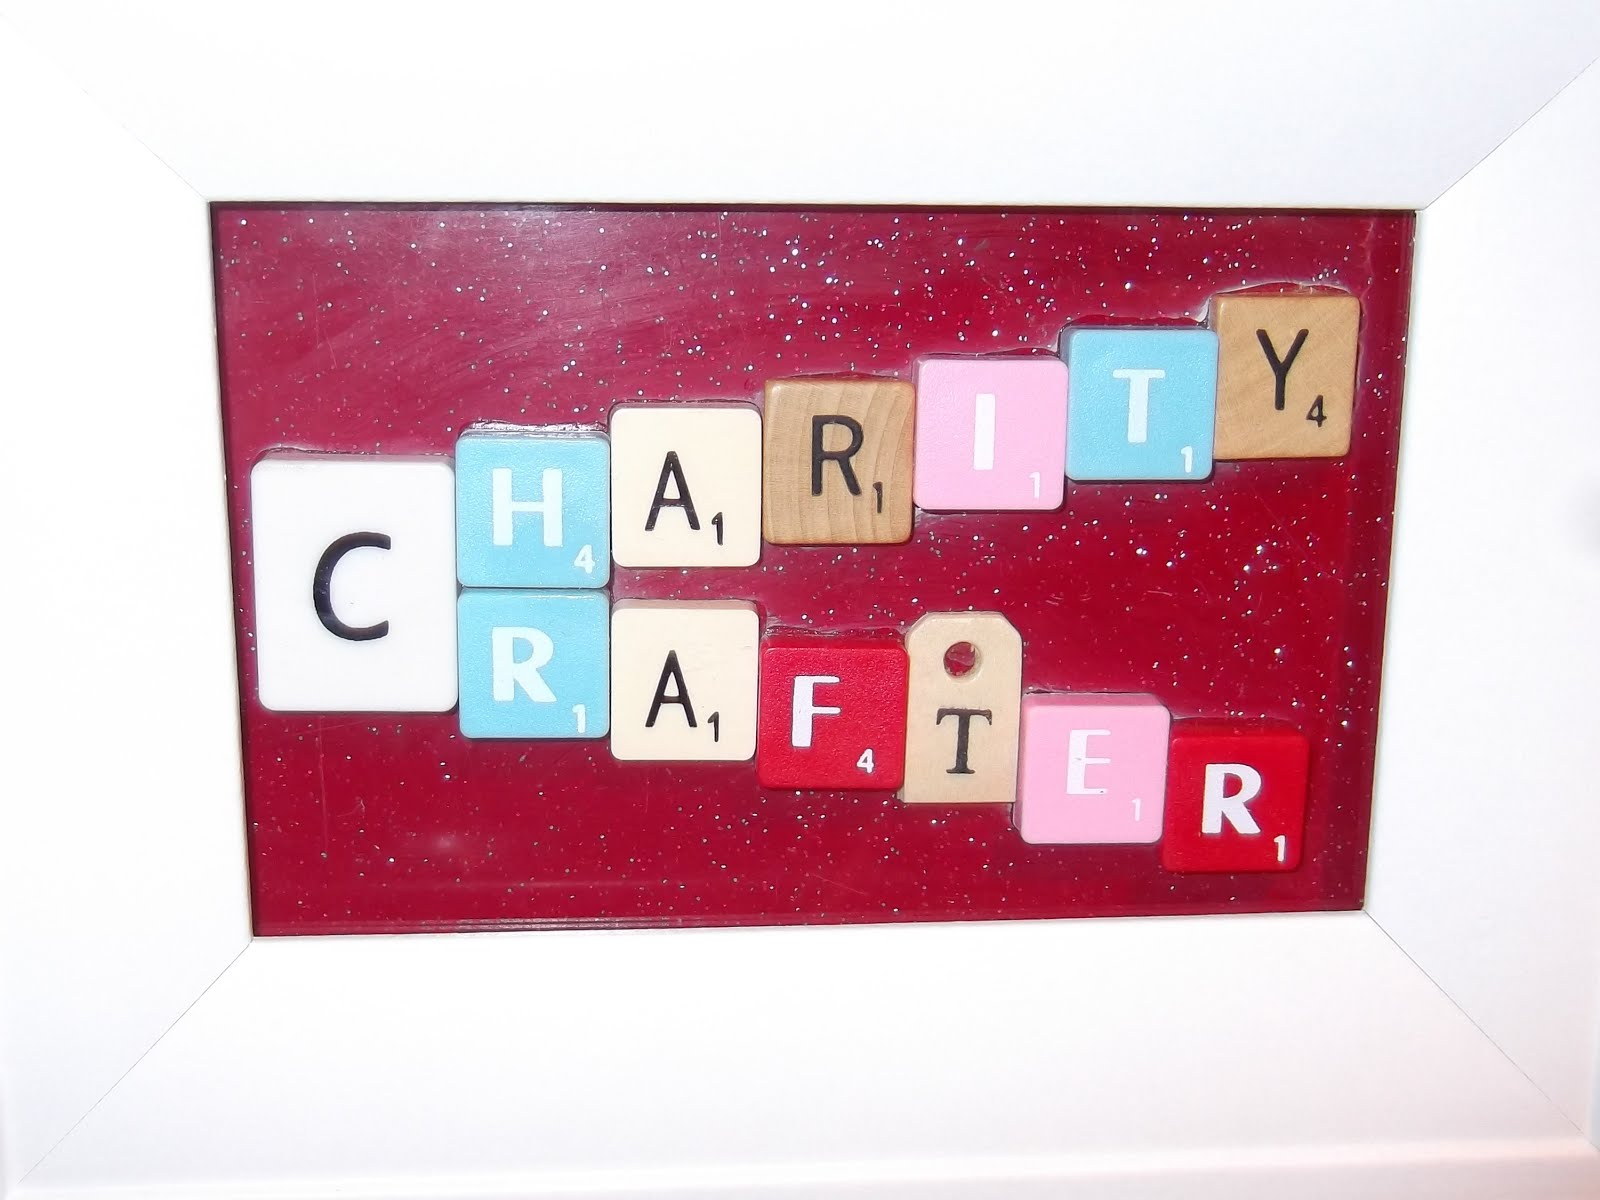 CHARITY CRAFTER